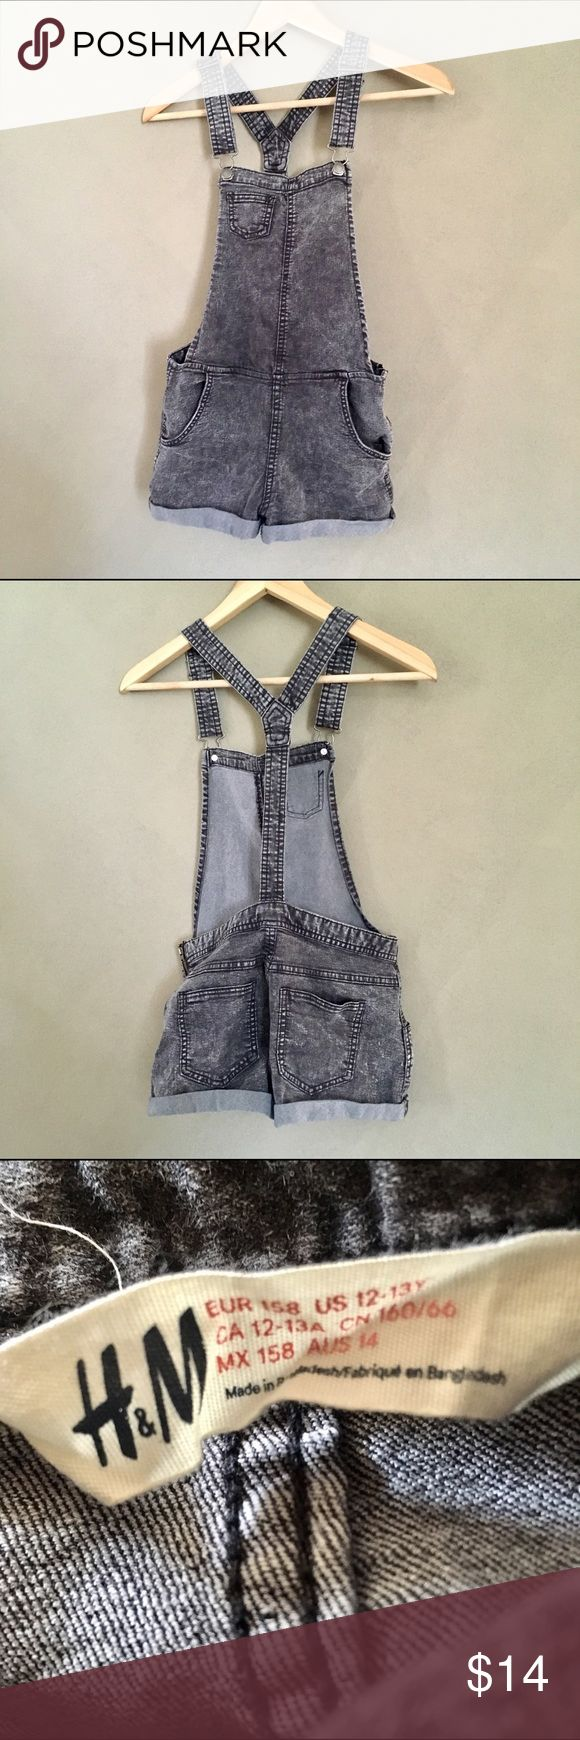 Kids [H&M] Acid Washed Denim Shorts Overalls Kids [H&M] black acid washed denim cuffed shorts overalls in an excellent/like new condition size 12-13yo. Way cute! H&M Bottoms Overalls